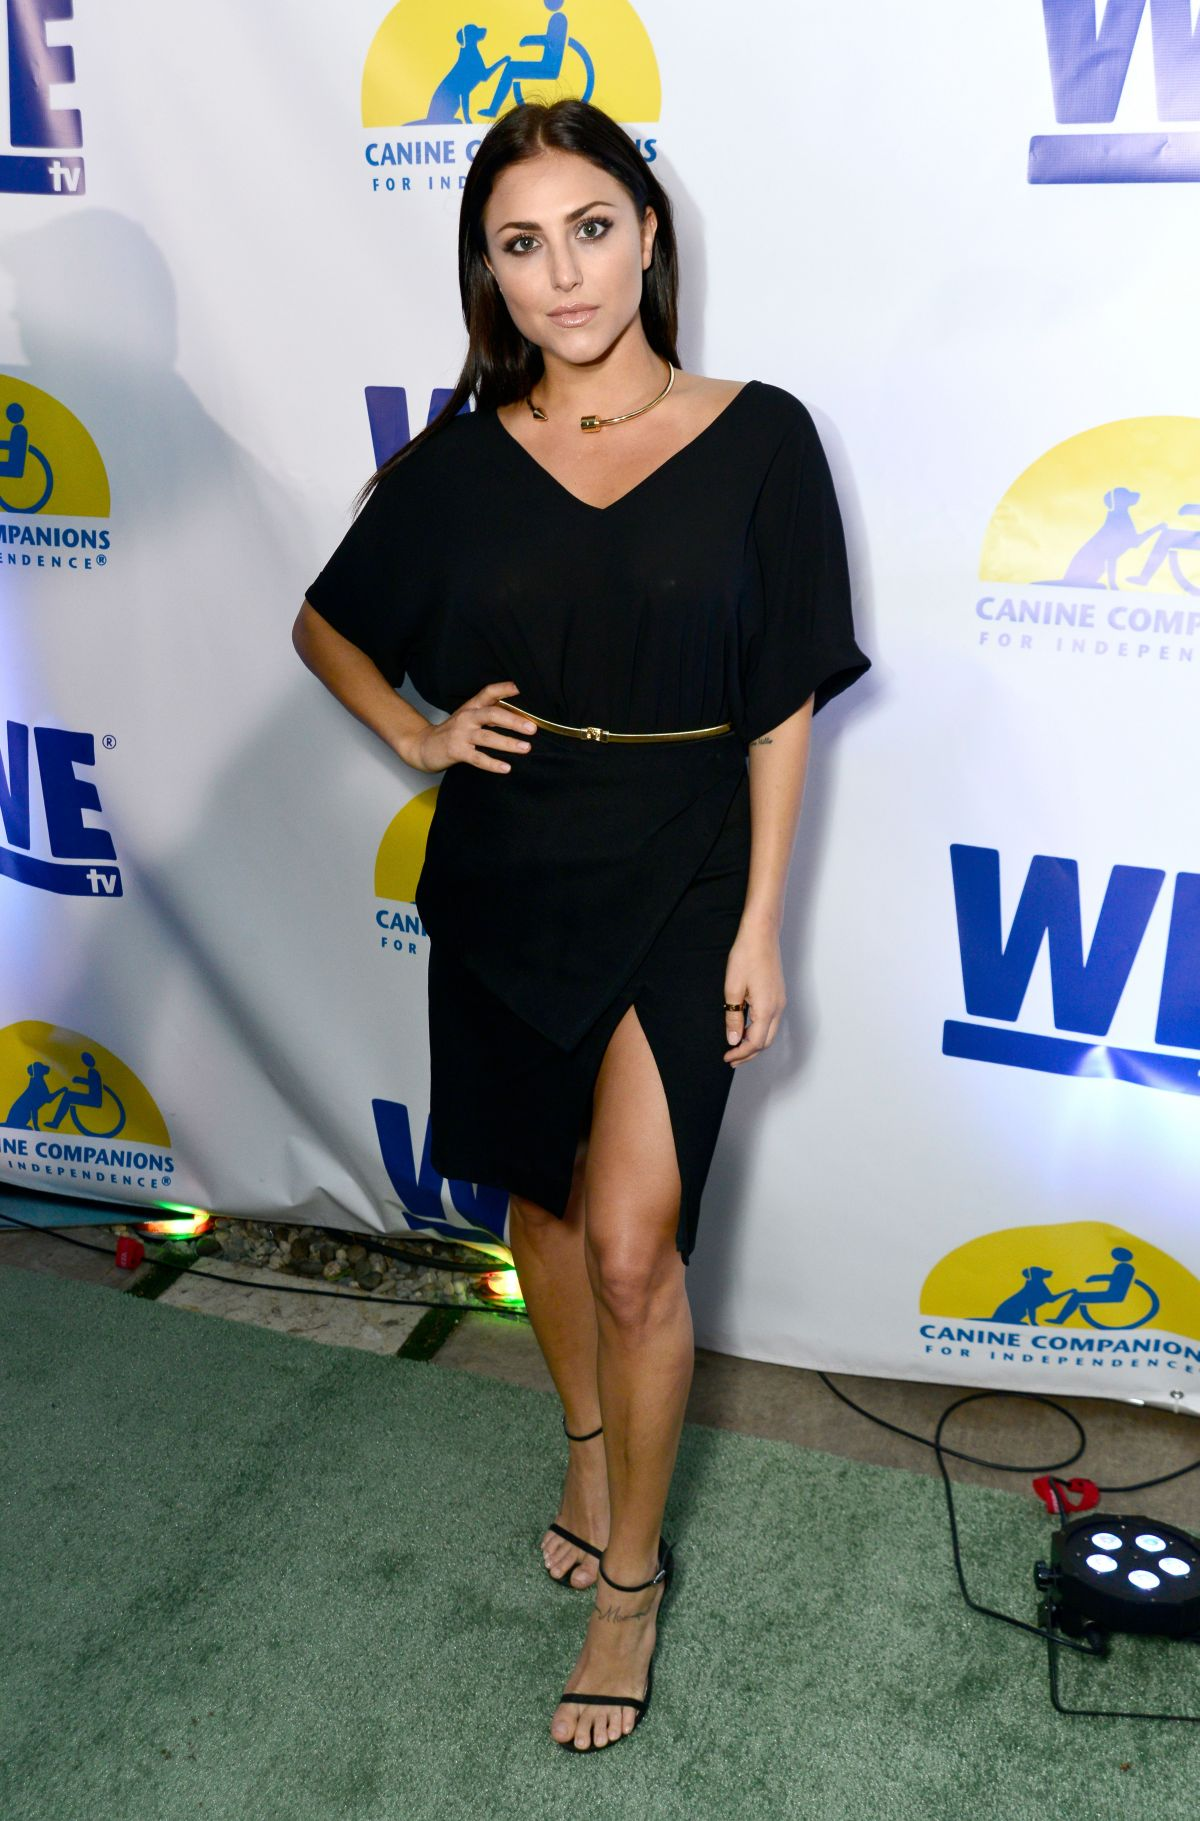 CASSIE SCERBO at Canine Companions for Independence Awareness in Los Angeles